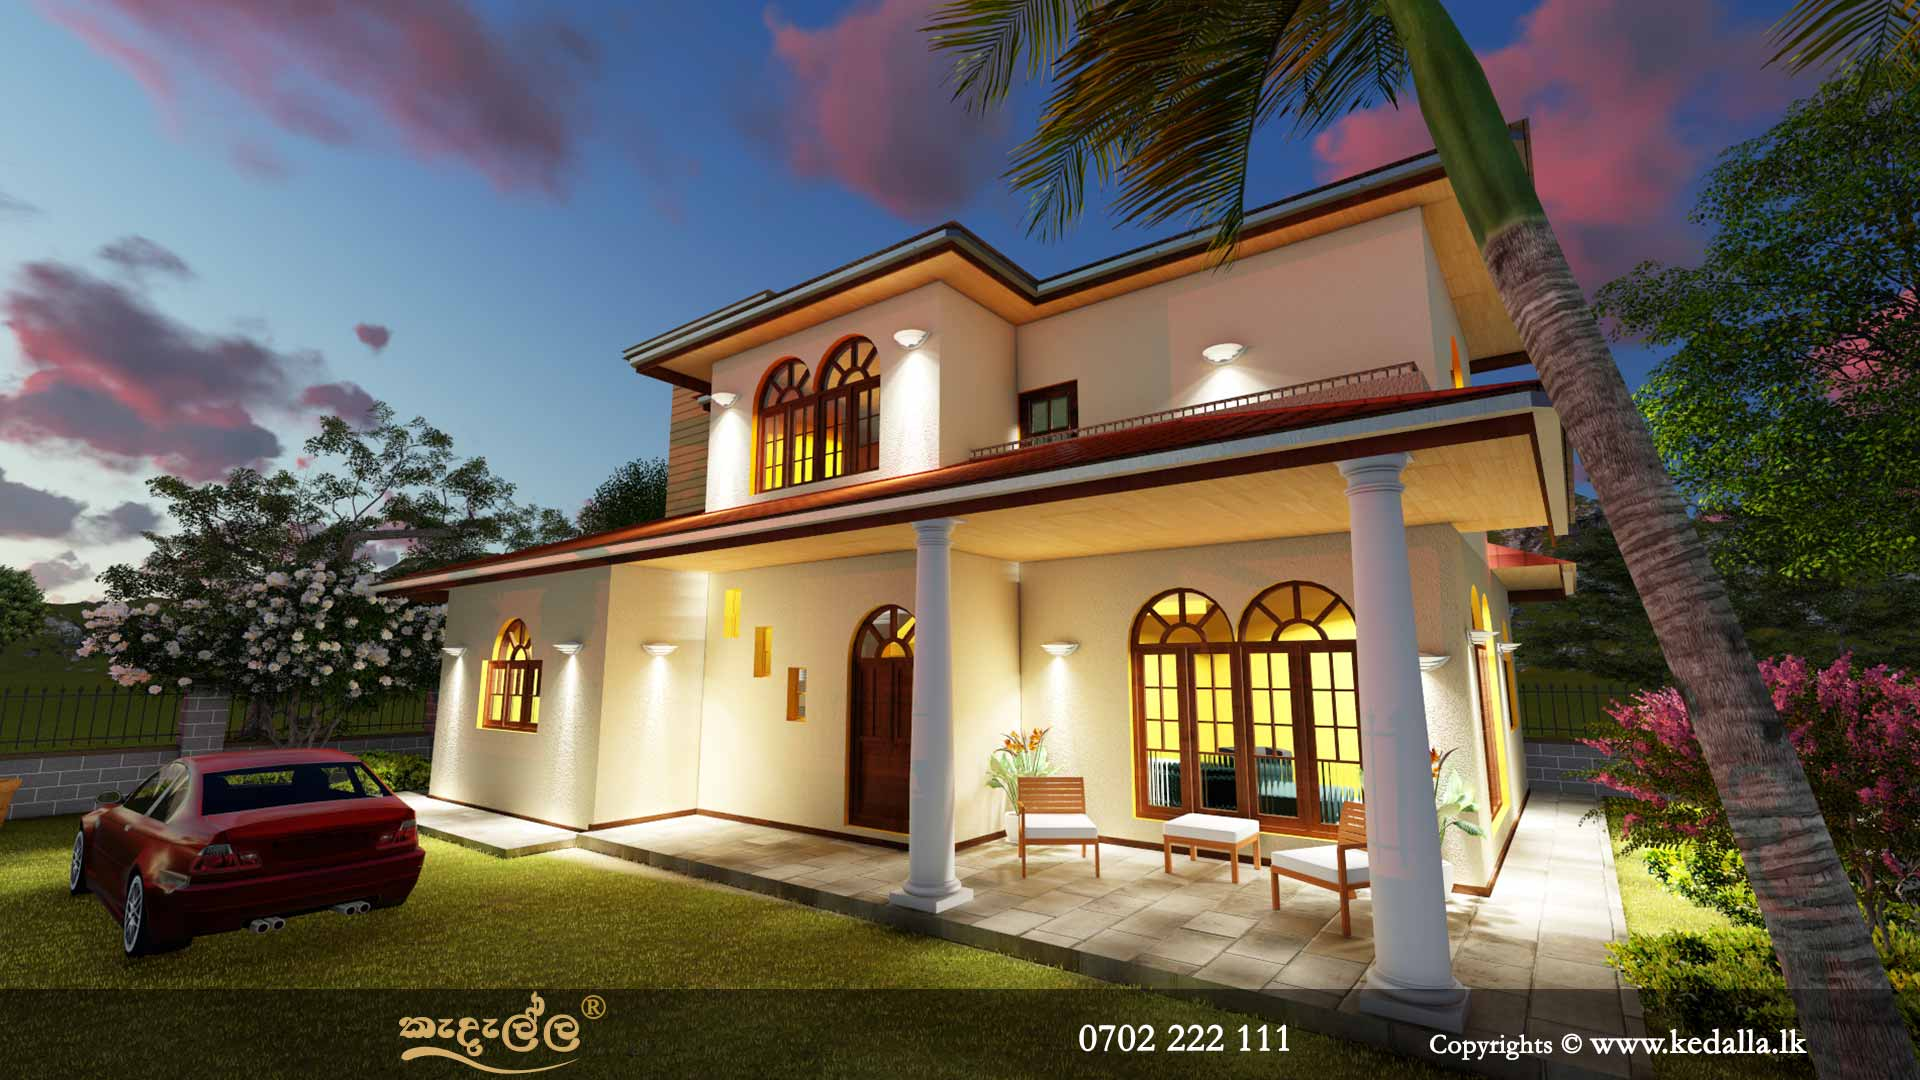 Top architect in Kandy designed roof type traditional two story house plan with beautiful open verandah